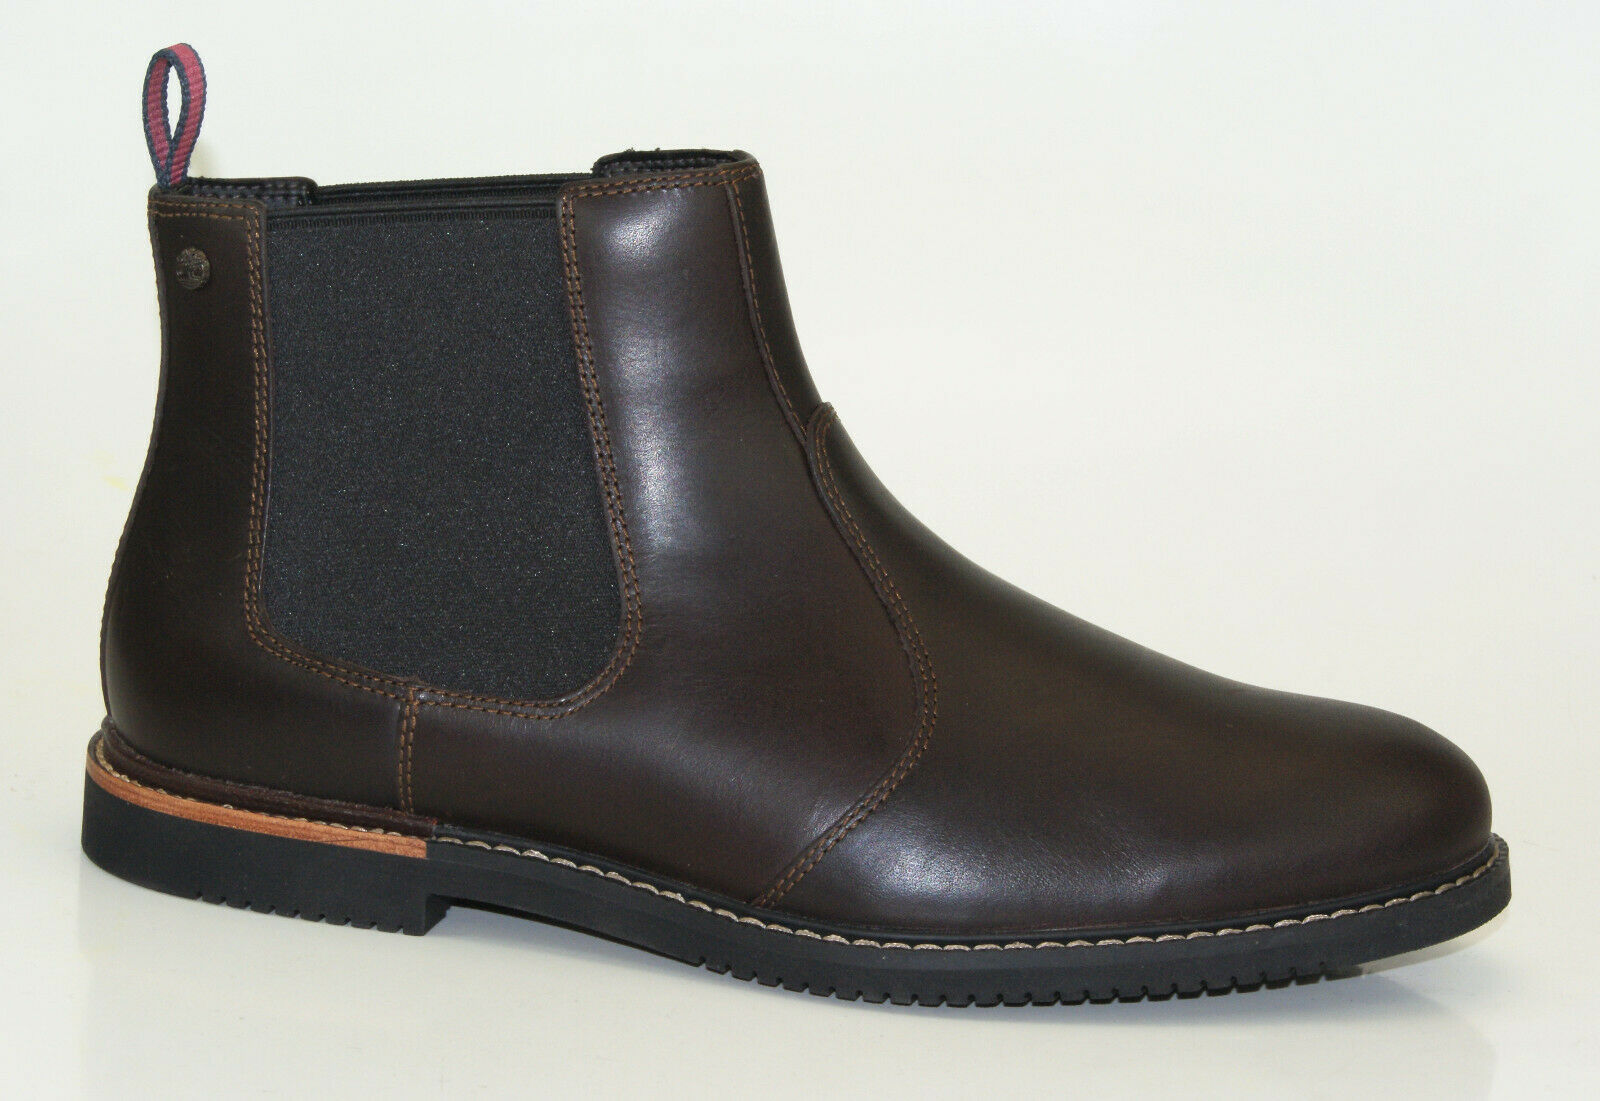 Timberland Brook Park Chelsea Boots Ankle Boots Men Boots Shoes 5516A